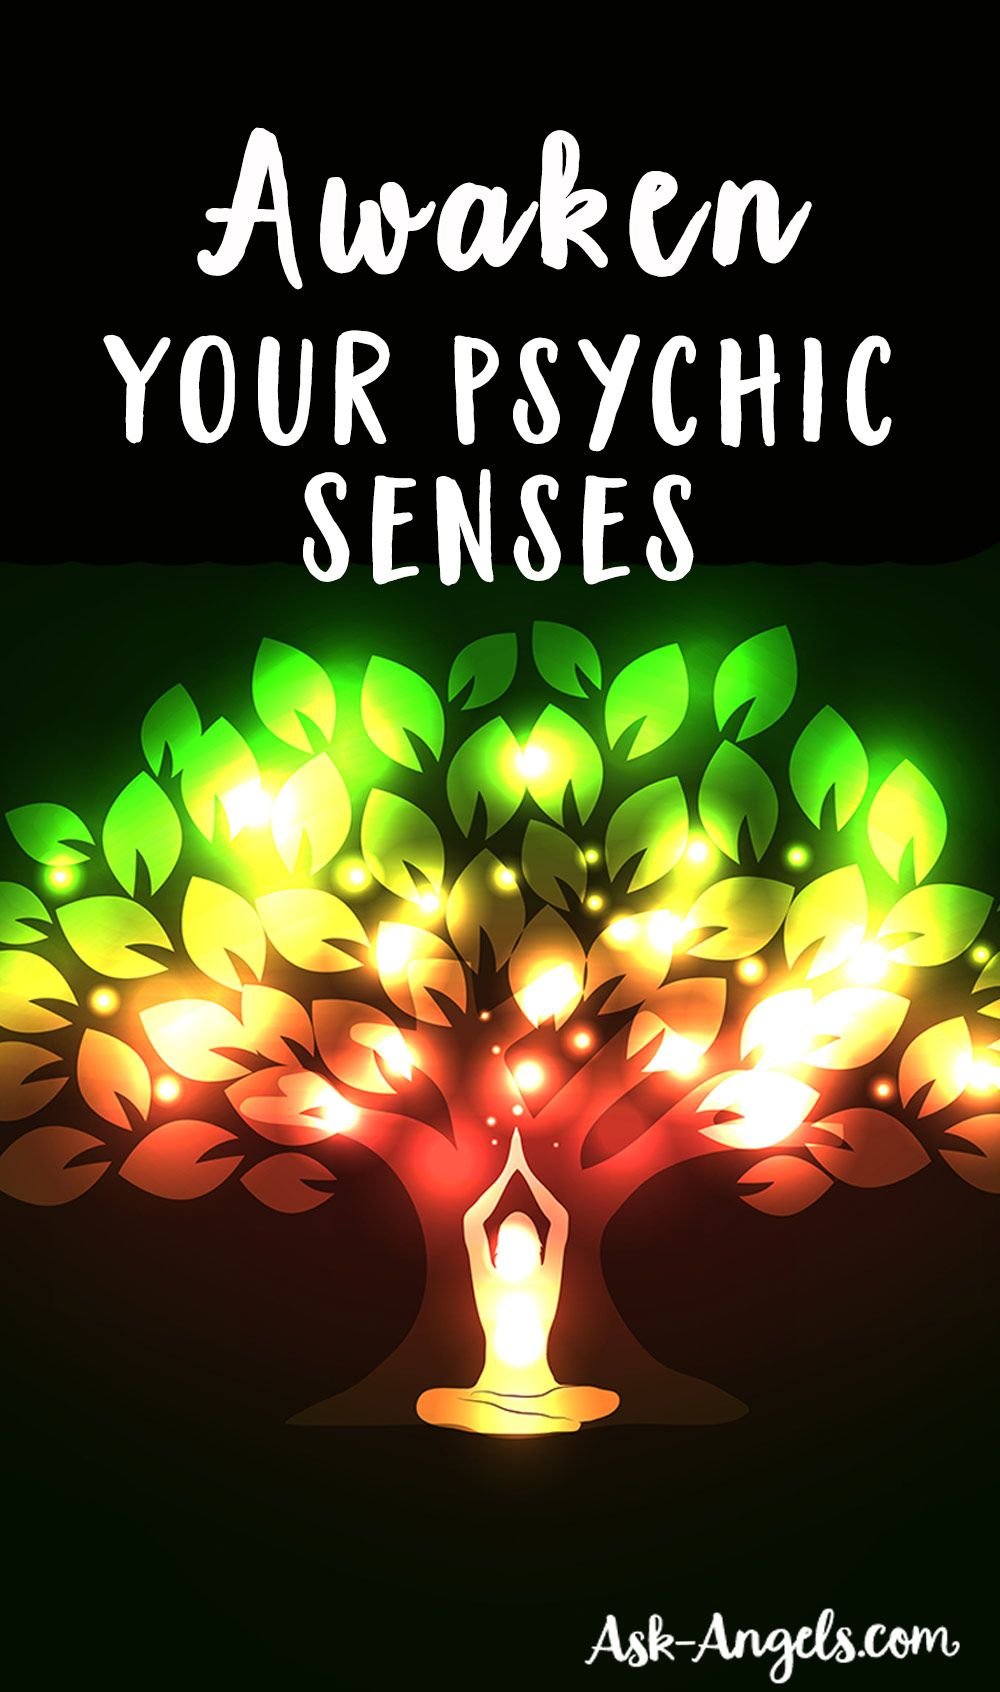 Psychic Quotes Journey Through The Elements And Awaken Your Psychic Senses